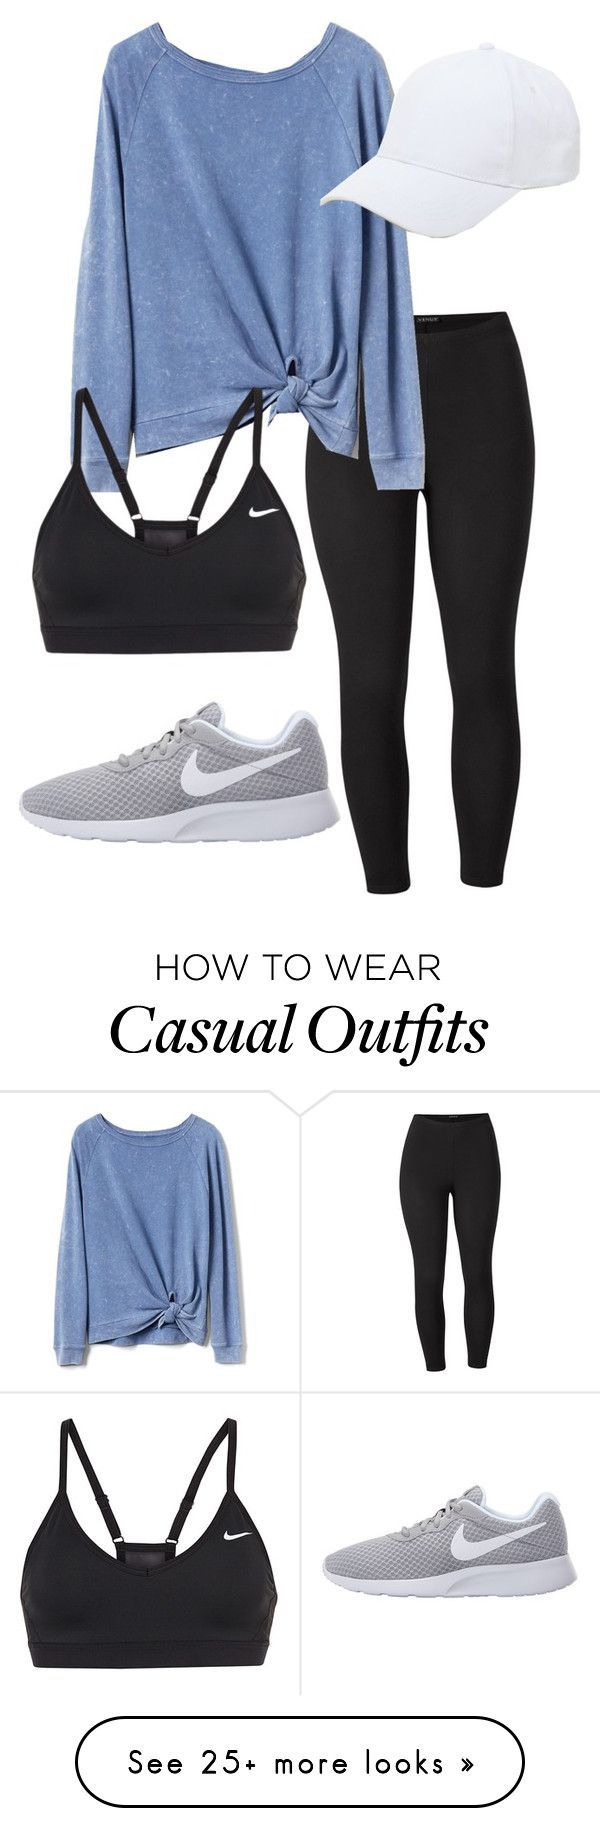 Everyday Casual look ?? by smhowie on Polyvore featuring Venus, Gap, NIKE, Sole Society and plus size clothing (Fitness Clothes Outfits) #nikefreeoutfit